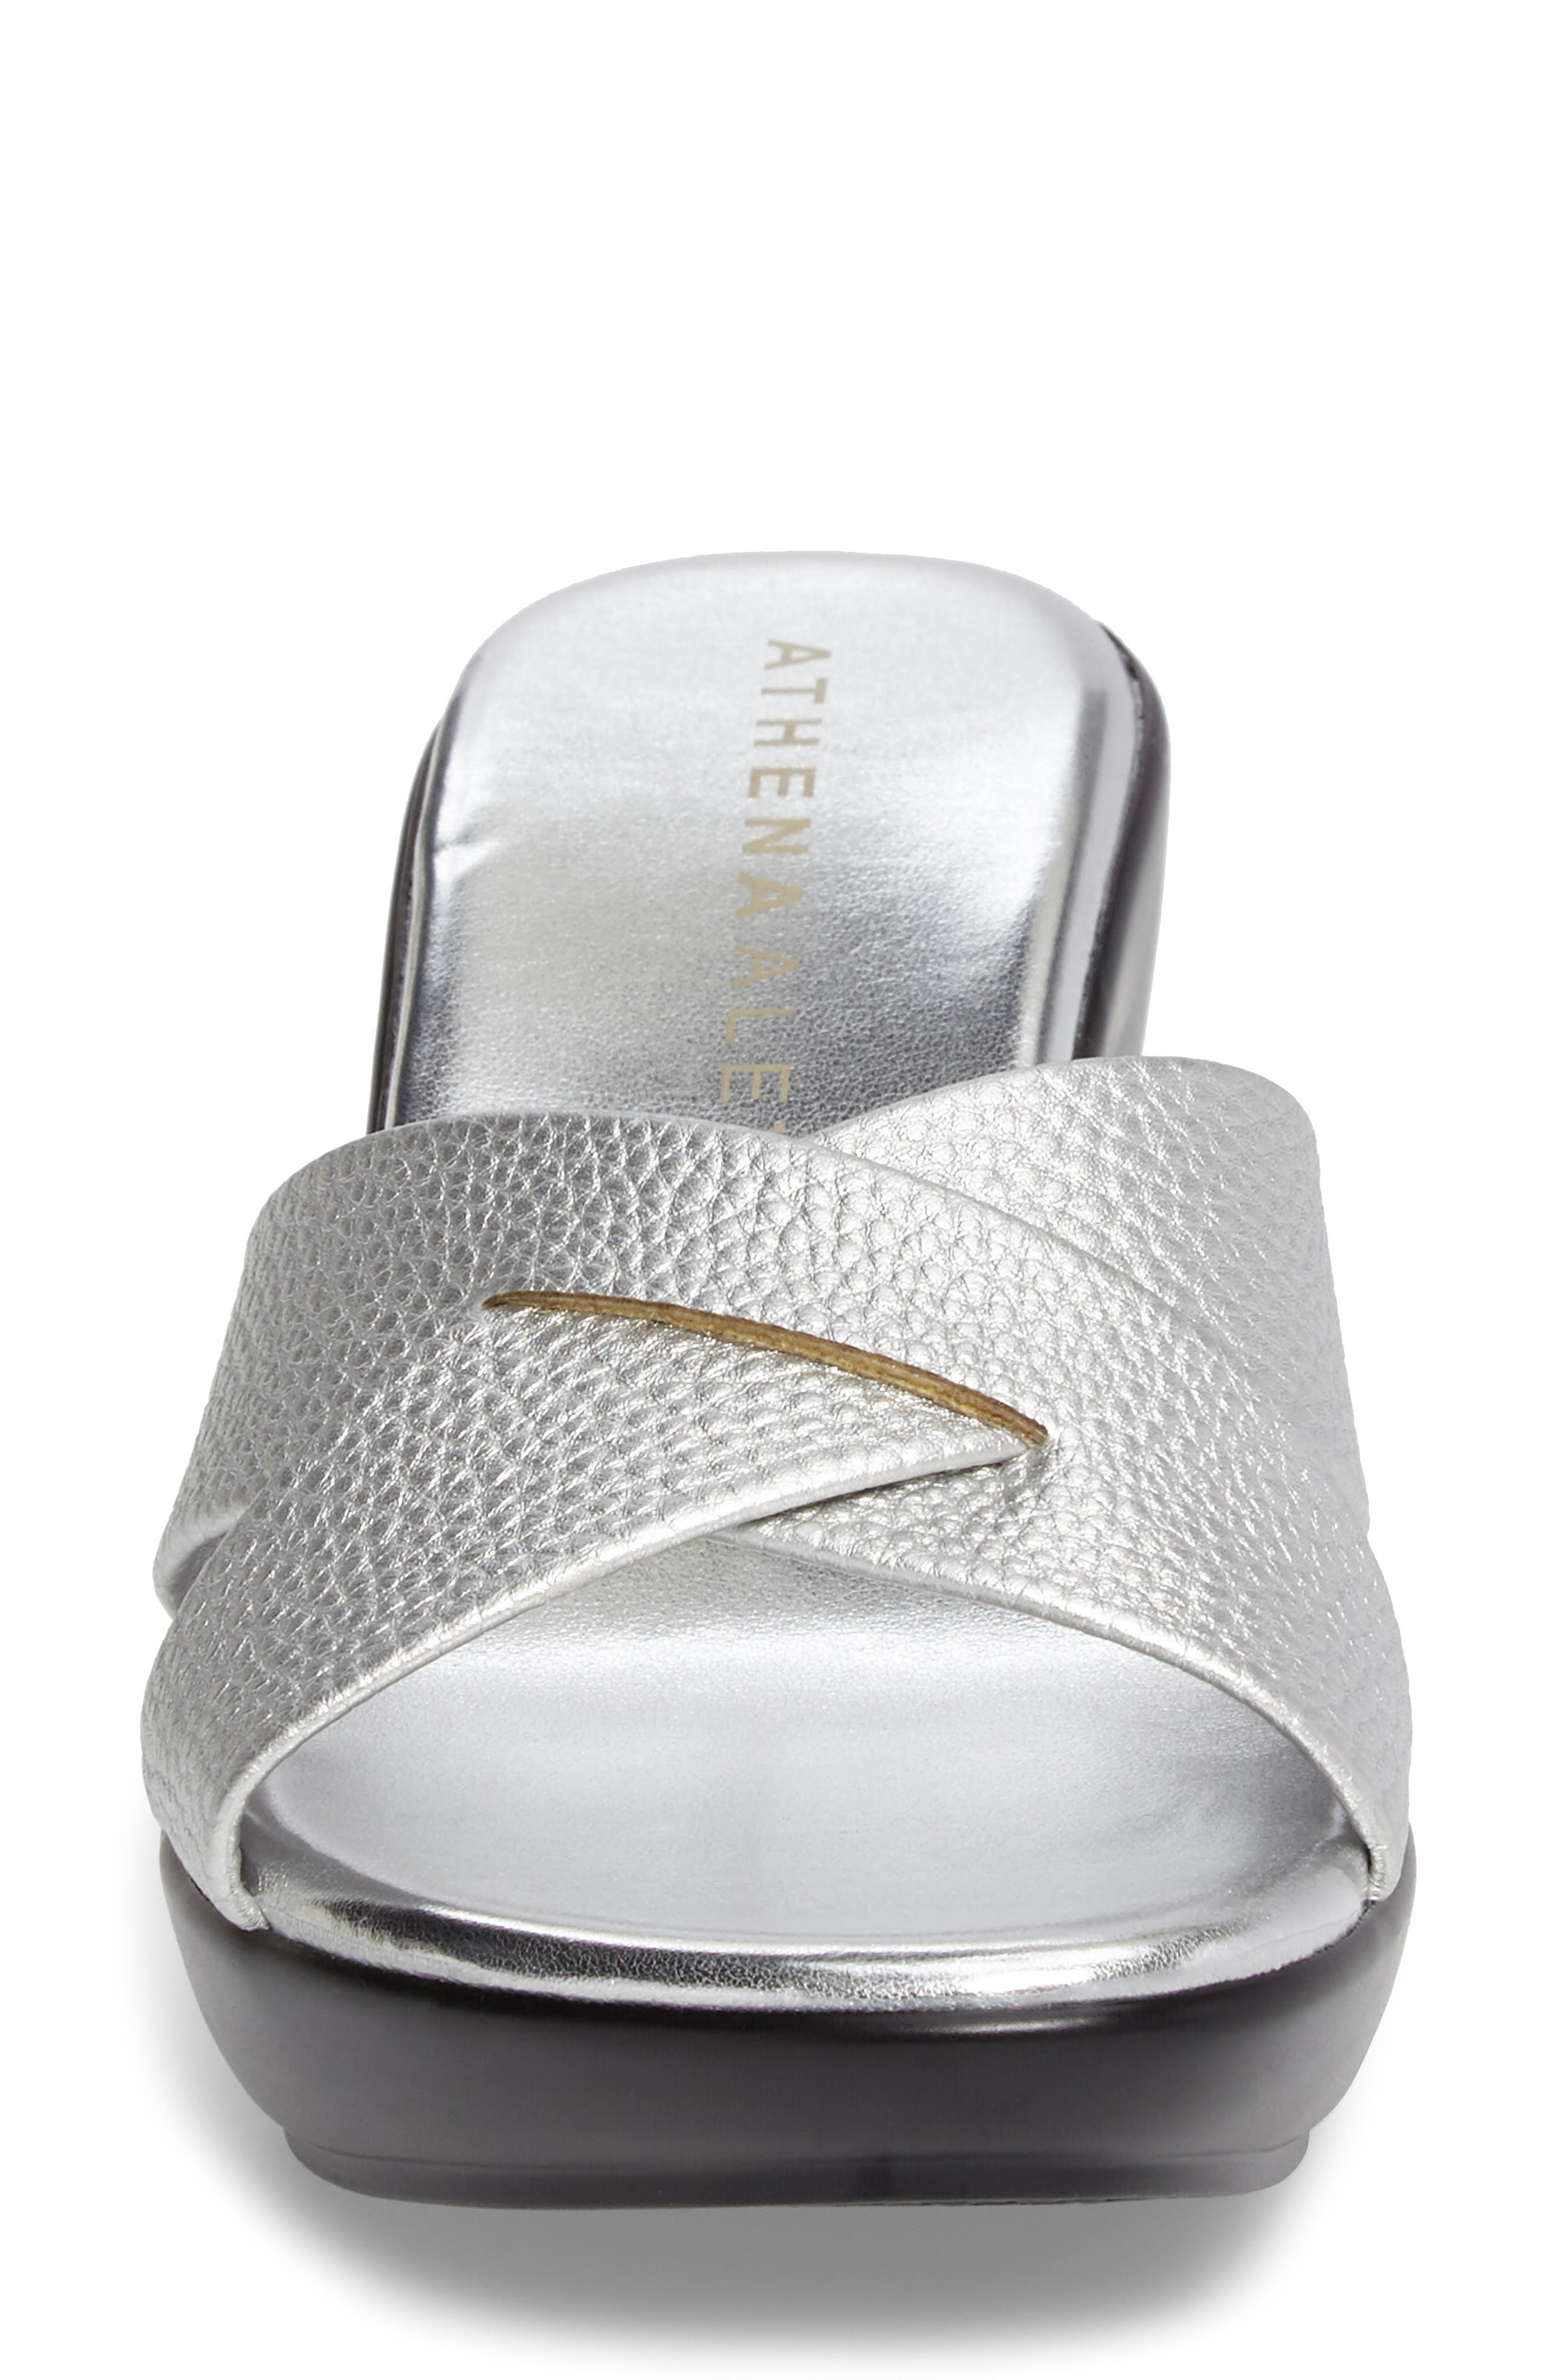 Verna Wedge Slide Sandal,                             Alternate thumbnail 4, color,                             SILVER FAUX LEATHER